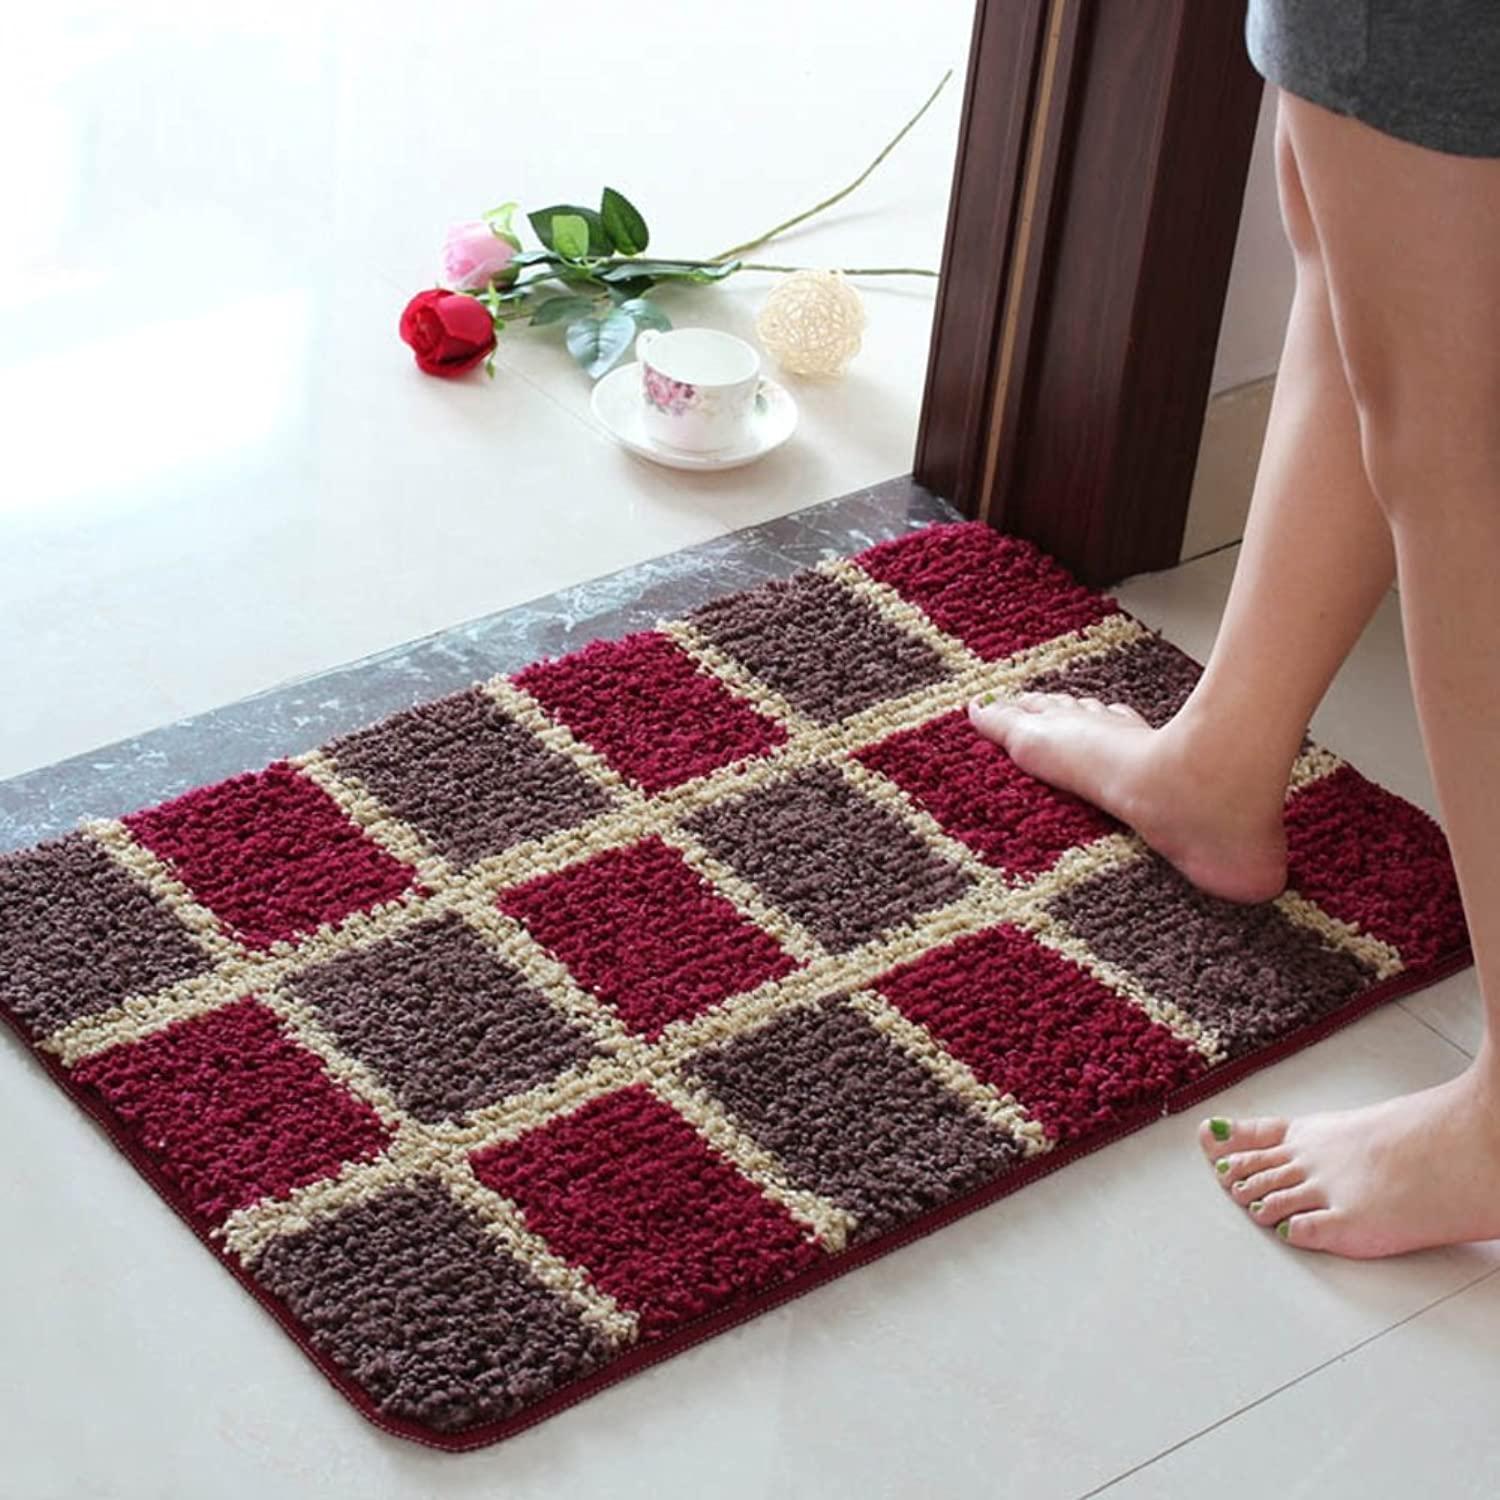 Doormat Anti Slip Rug Baby Room Soft Floor Door Ground mat Water Absorption pad Bathroom Bedroom Living Room Door entrances Patio Entry Ways Footcloth-A 31  47inch(80x120cm)